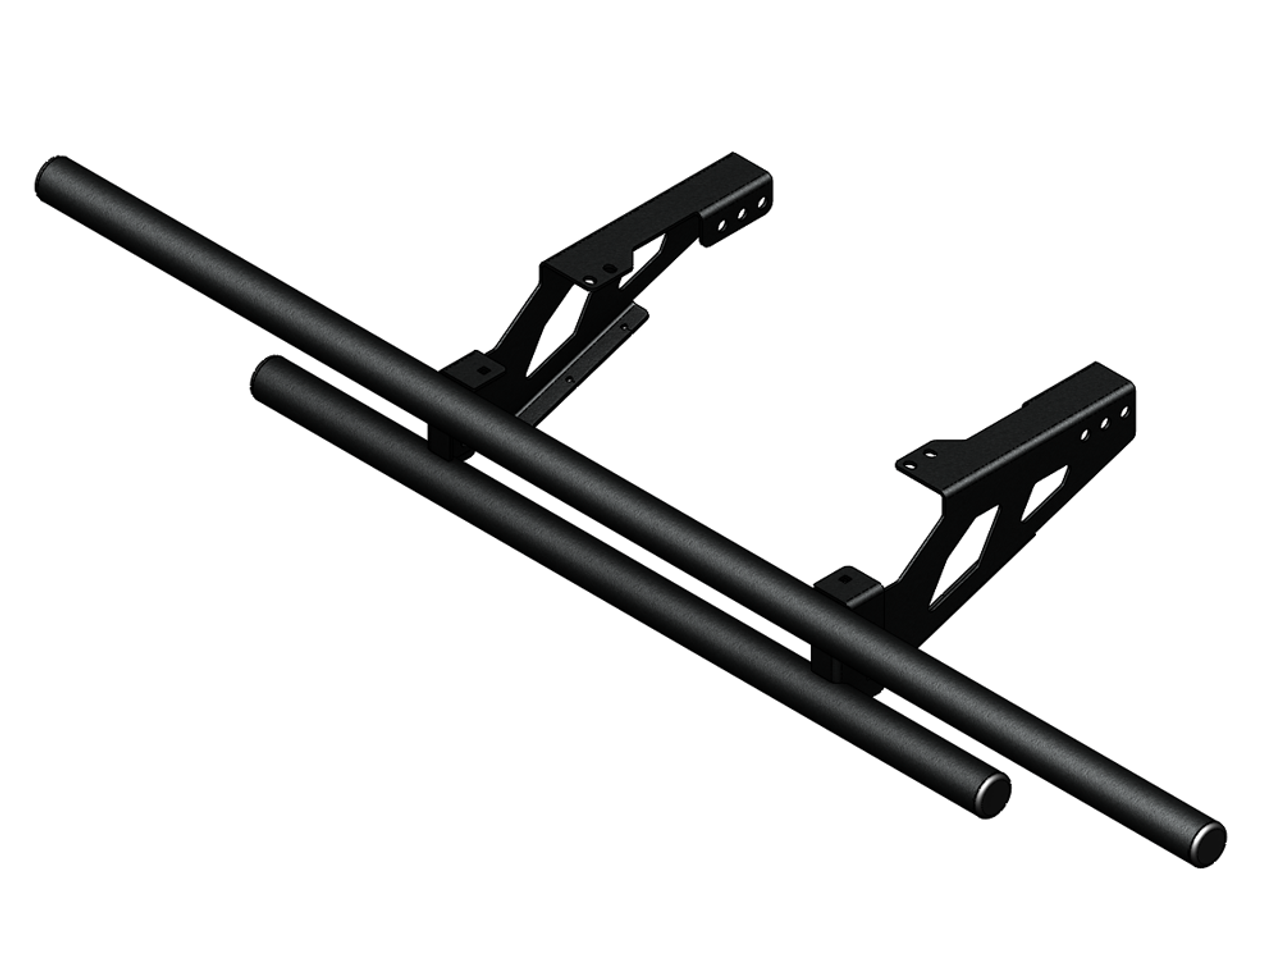 Polaris Full Size Ranger 900 XP Rear Double Tube KFI Bumper